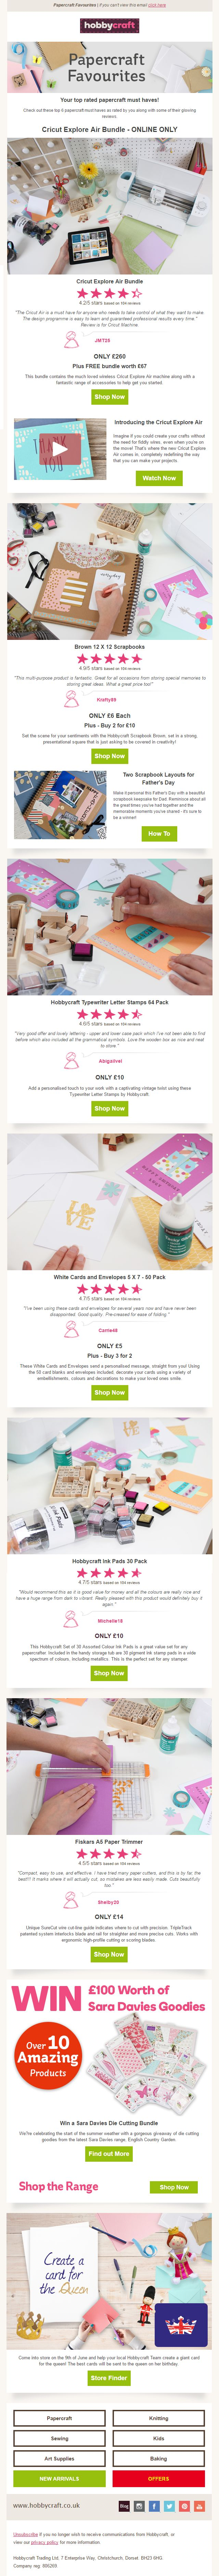 Hobbycraft email with product reviews and ratings #EmailMarketing #Email #Marketing #Reviews #Ratings #SocialProof #Social #Proof #Retail #Craft #Art